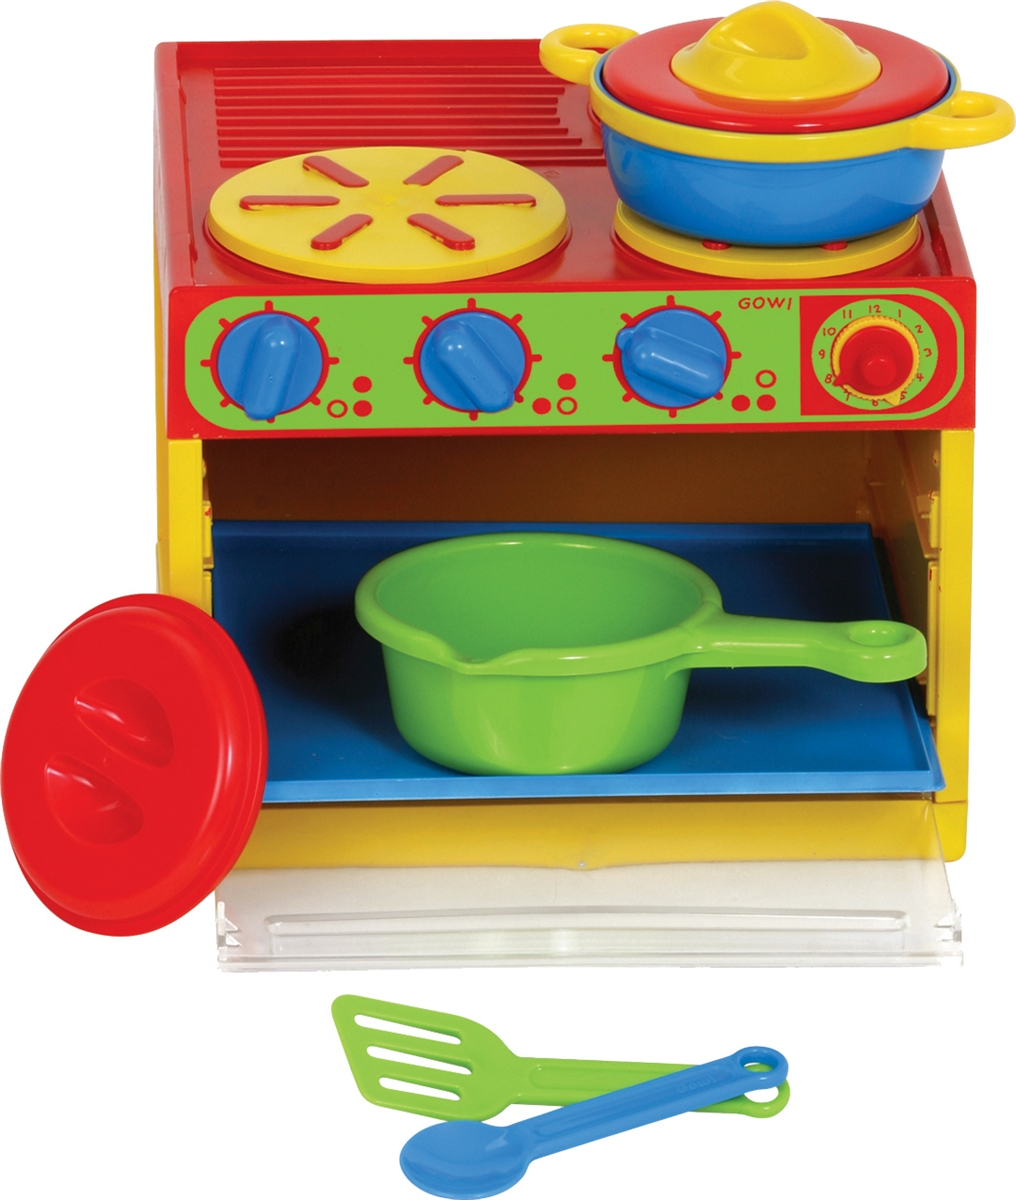 Gowi toys 7 pc kitchen set for Kitchen set toys divisoria